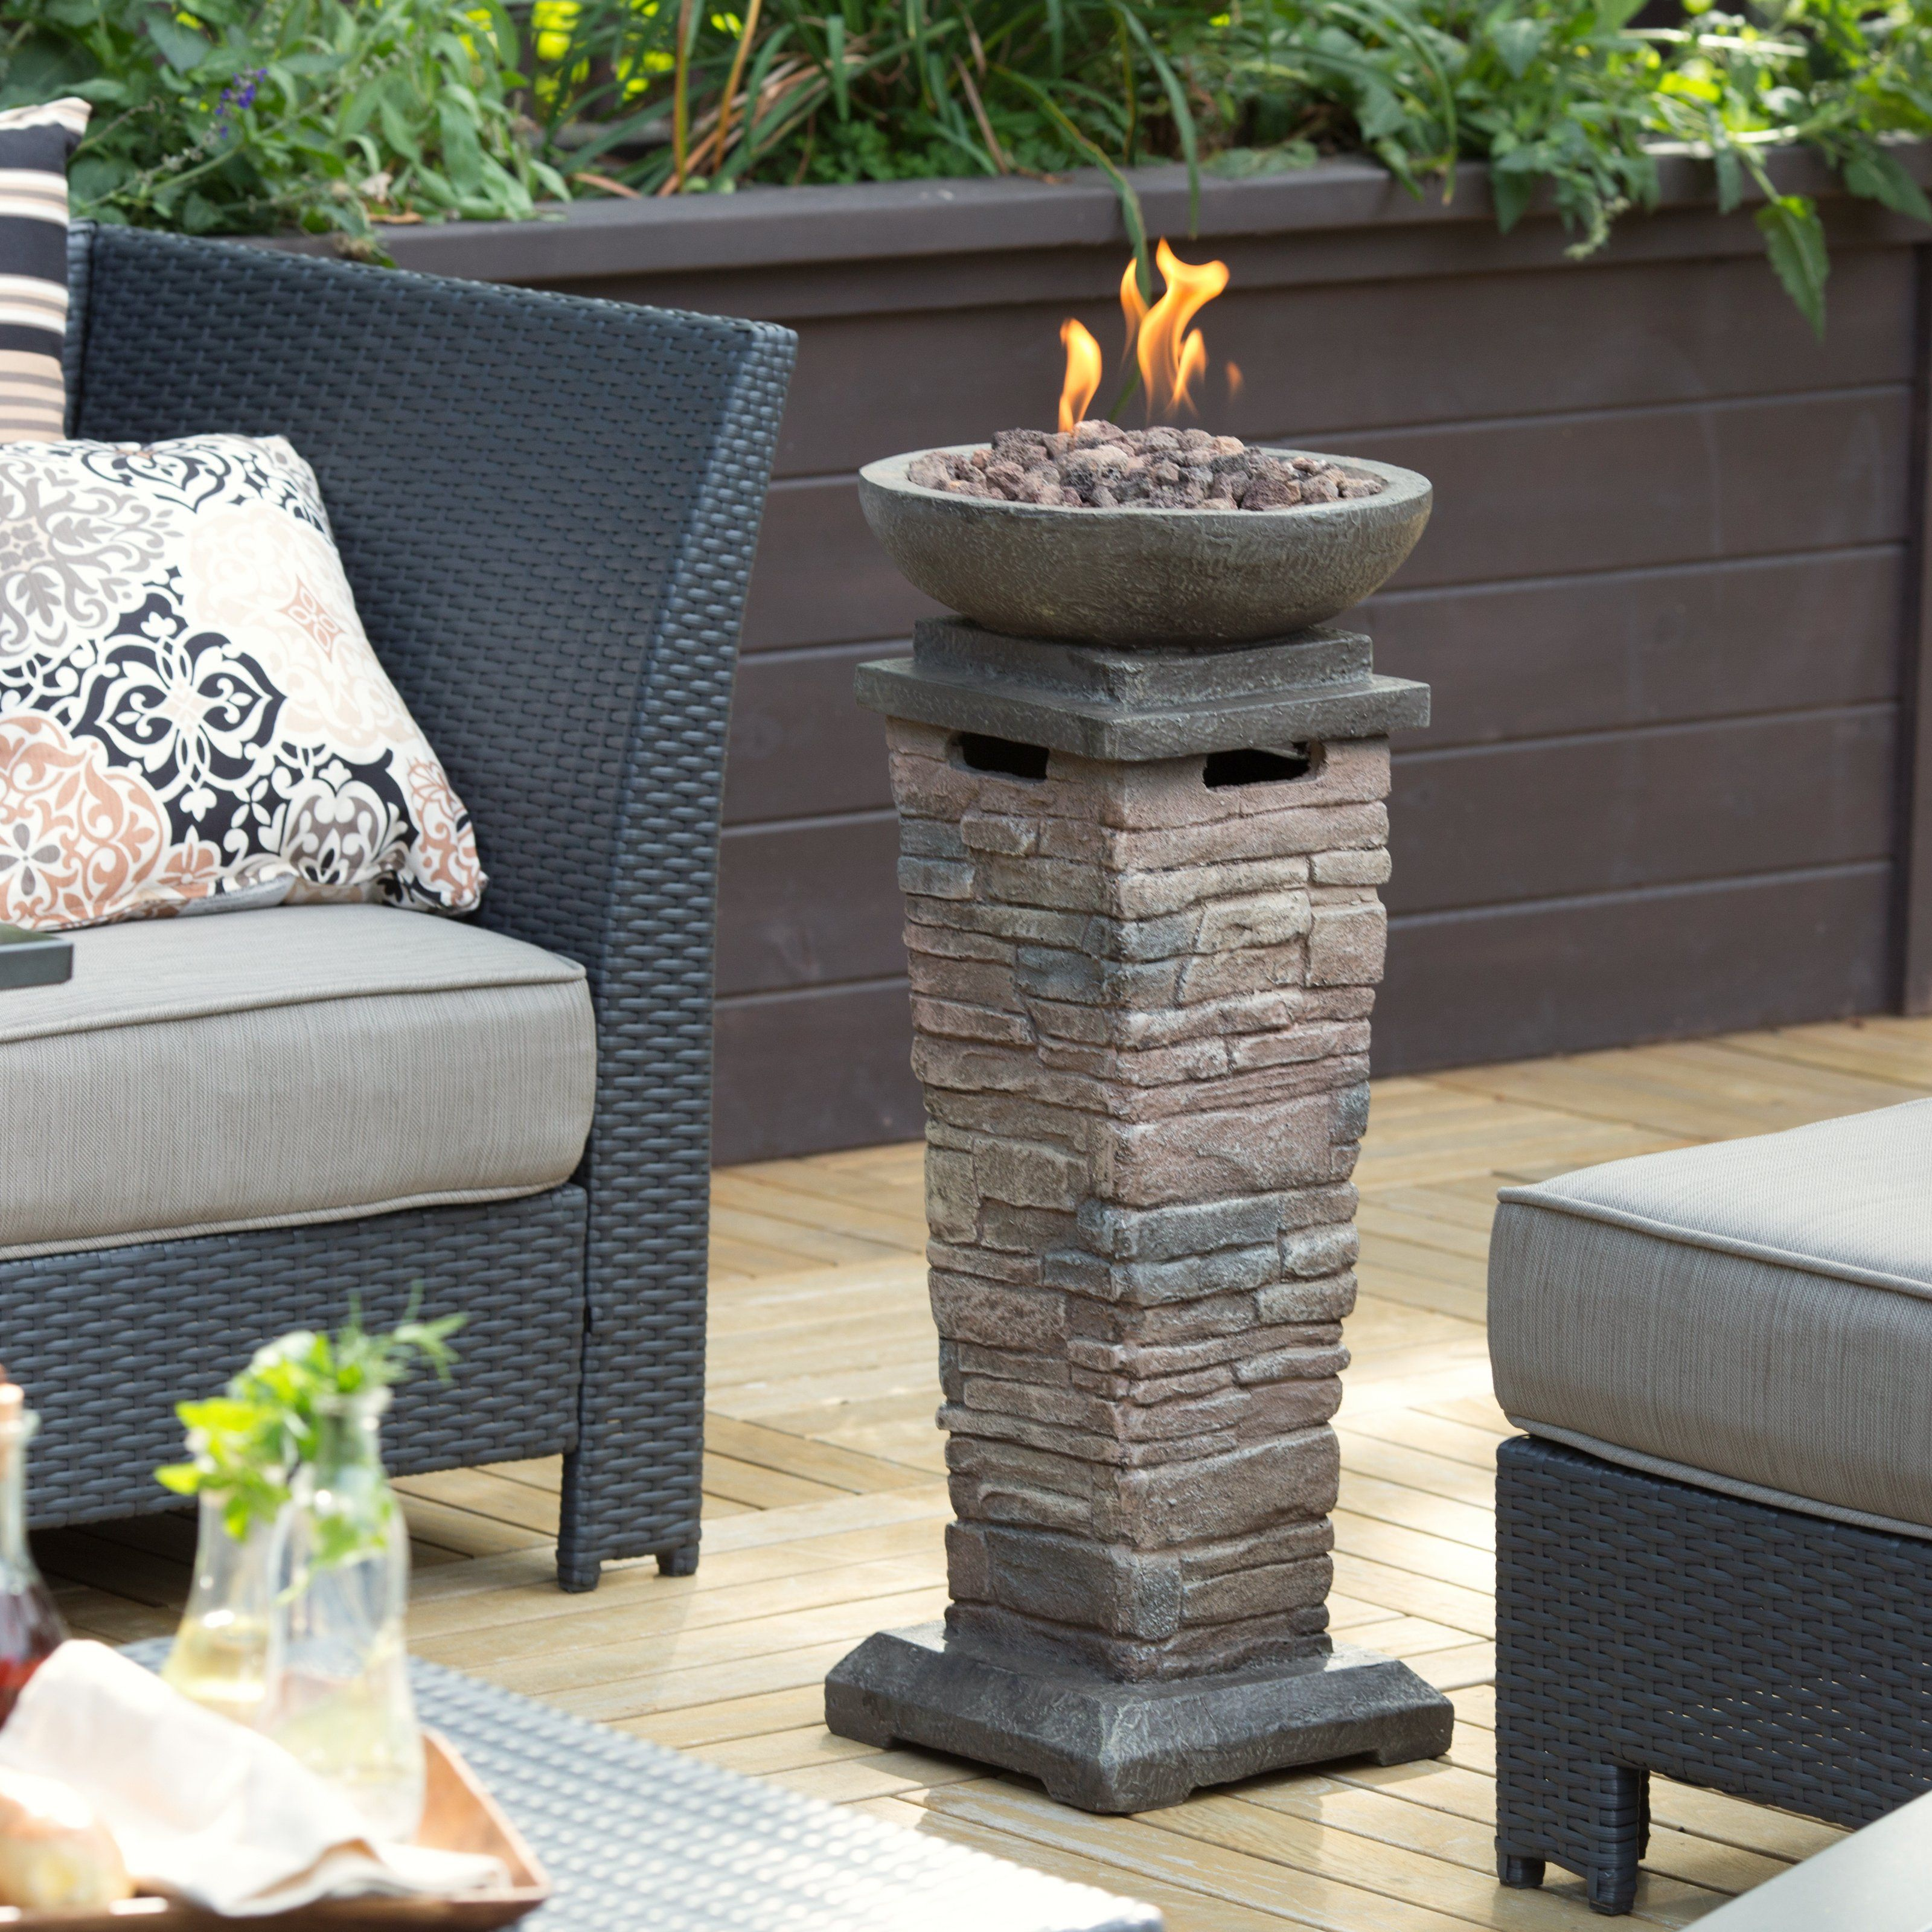 Red Ember Coronado Propane Fire Bowl With Free Cover Add Distinction To Your Patio Or Pool Area This Stately Pit The